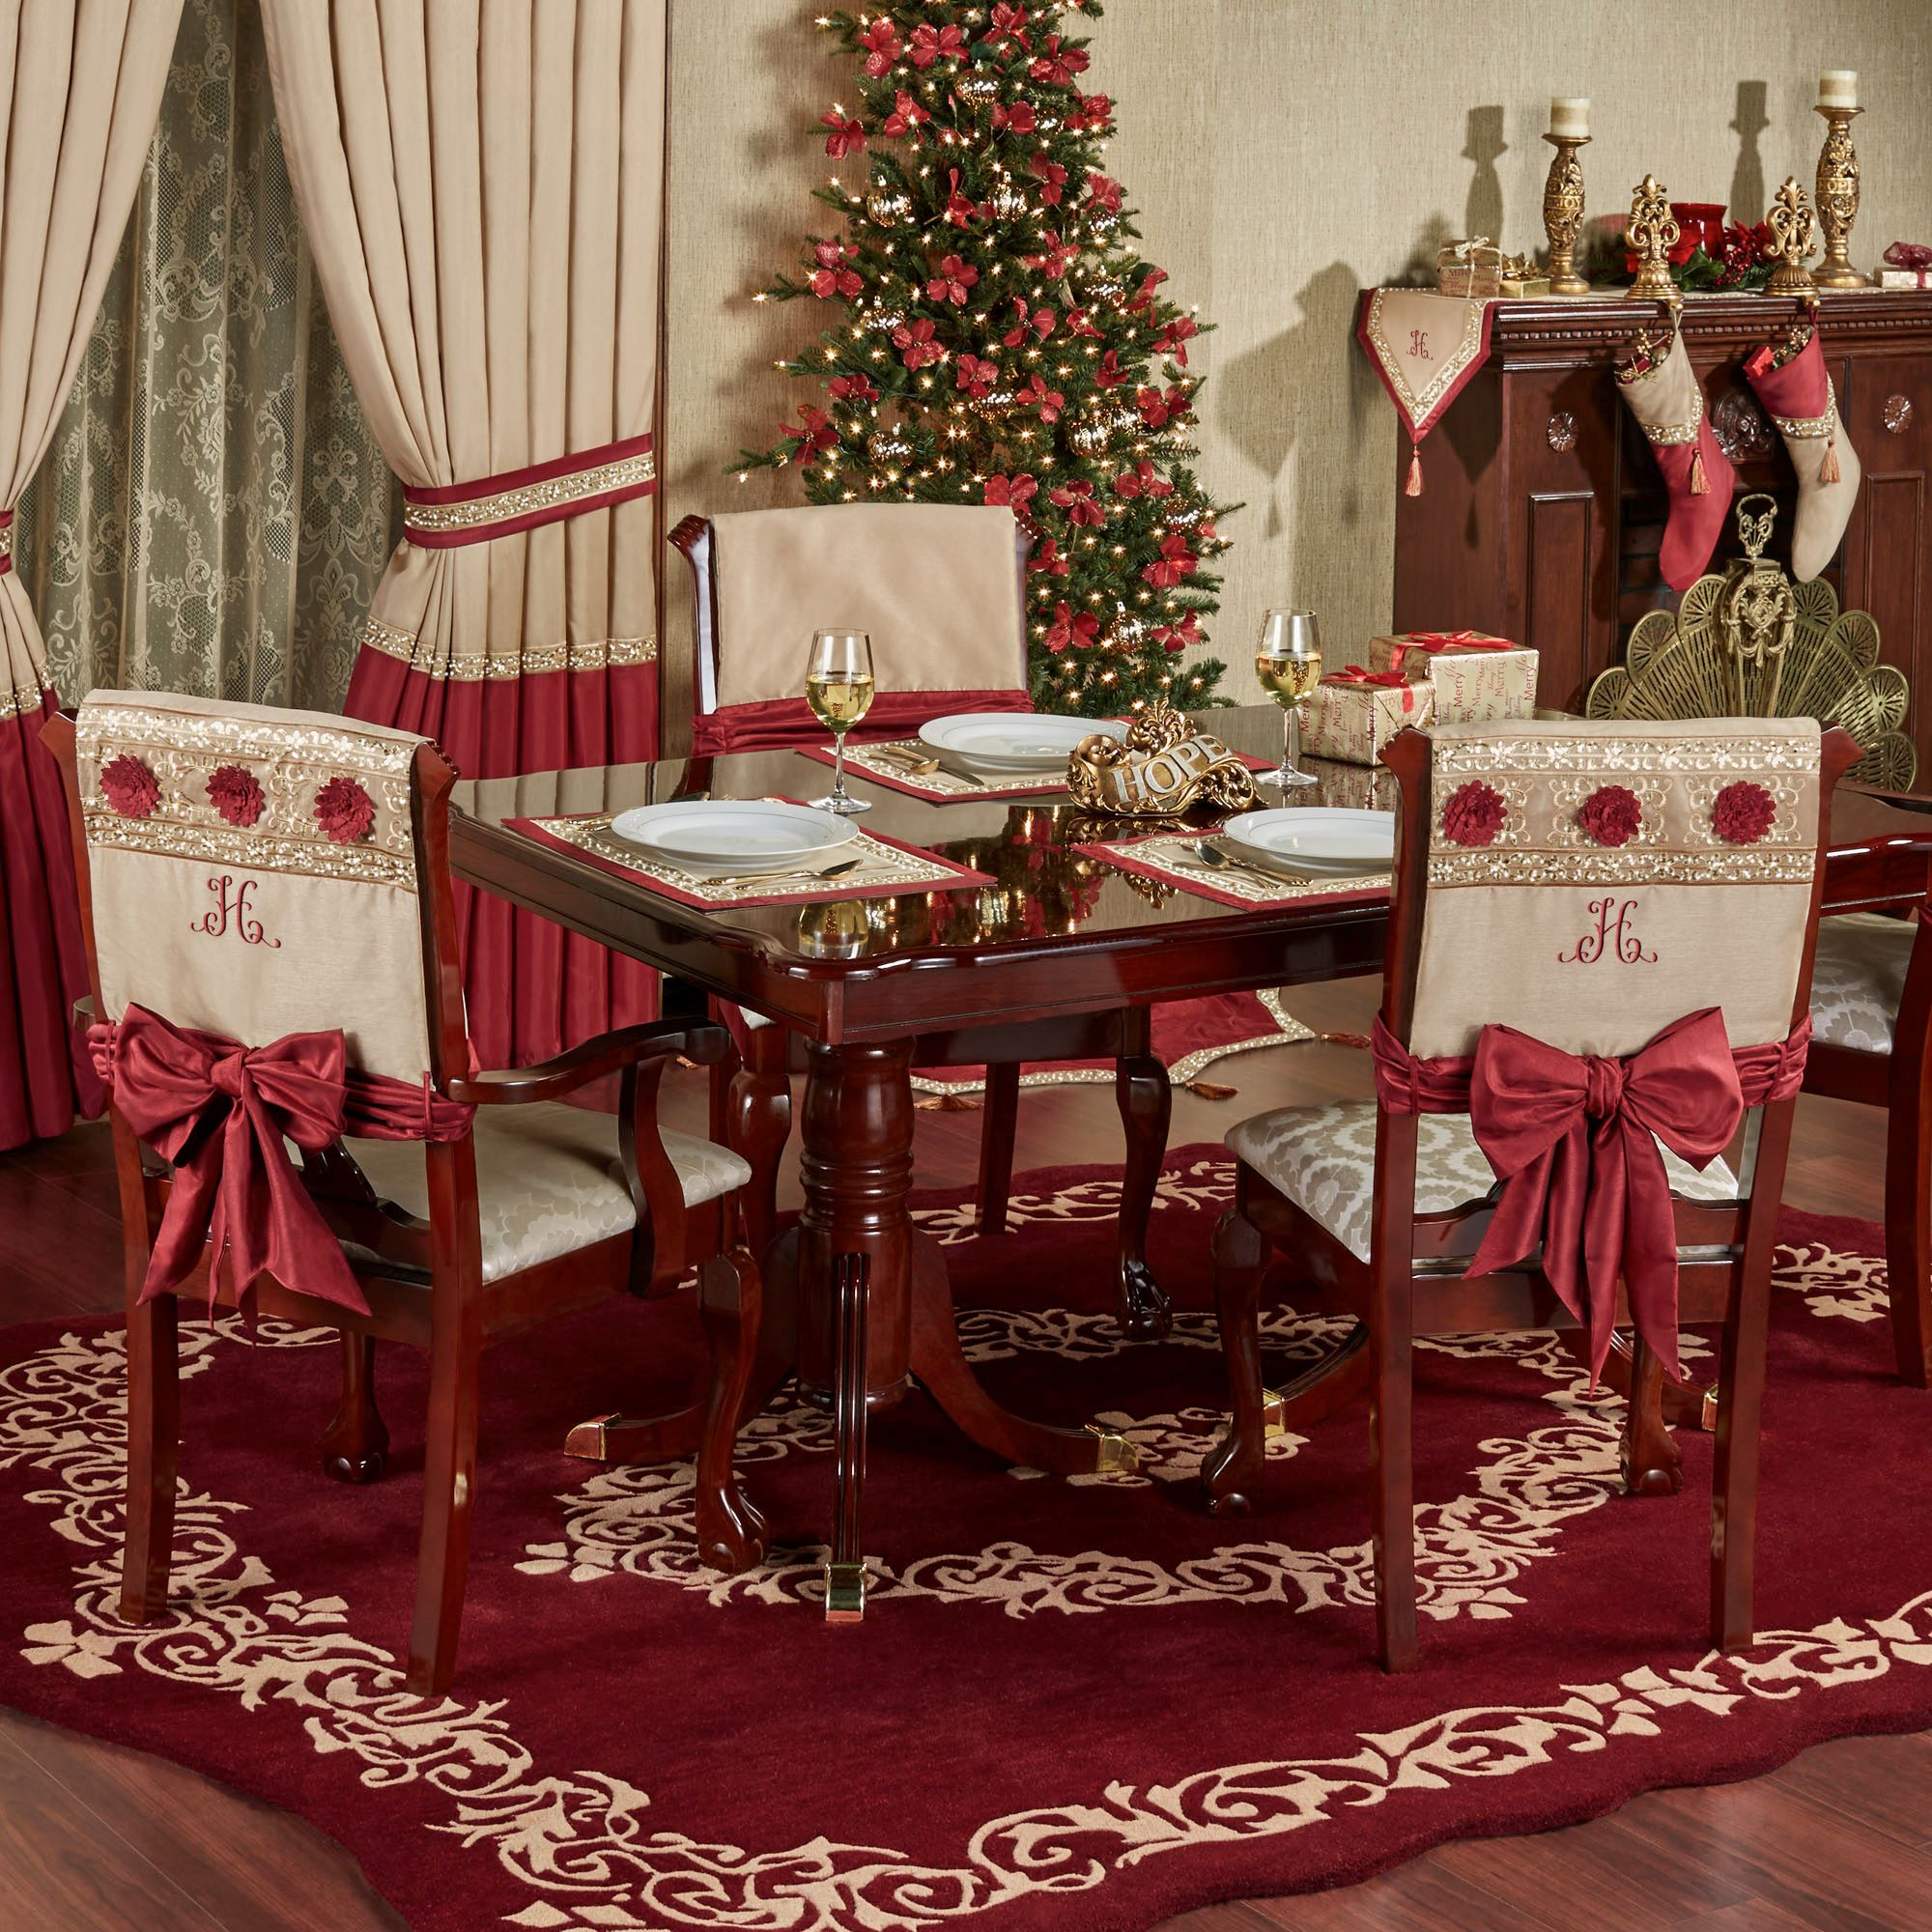 Christmas Chair Cover